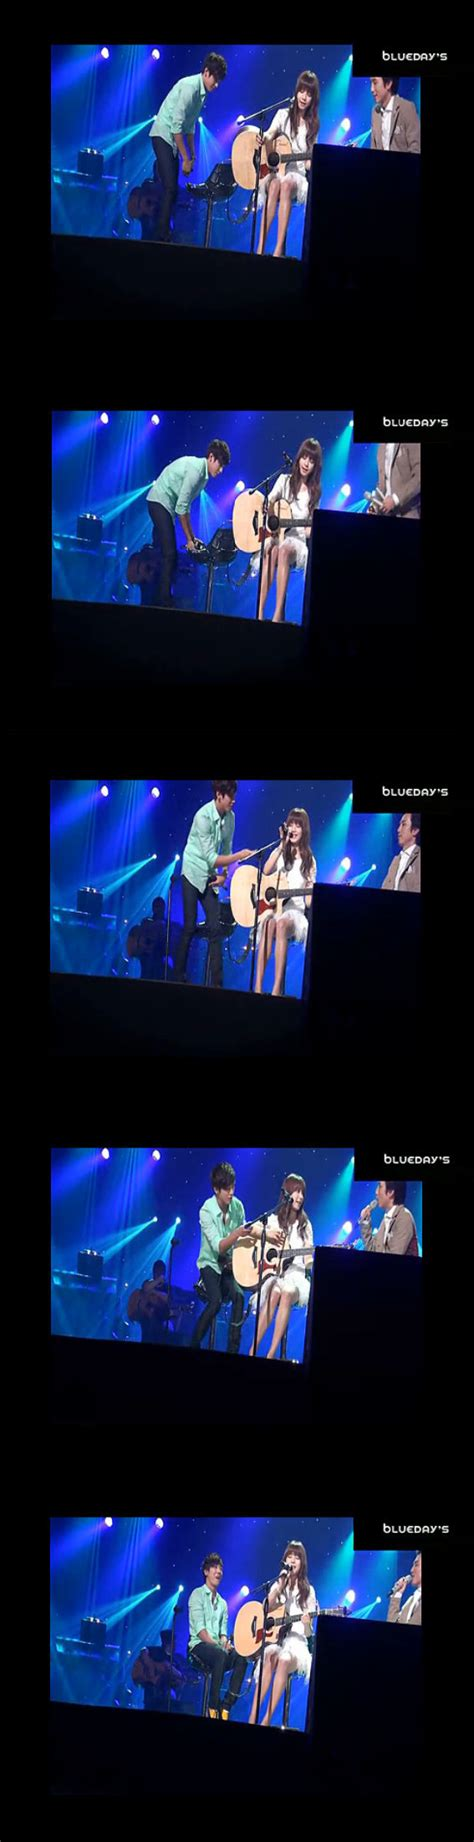 sketchbook yonghwa sweet potato days 120613 fancam fan taken jung yong hwa